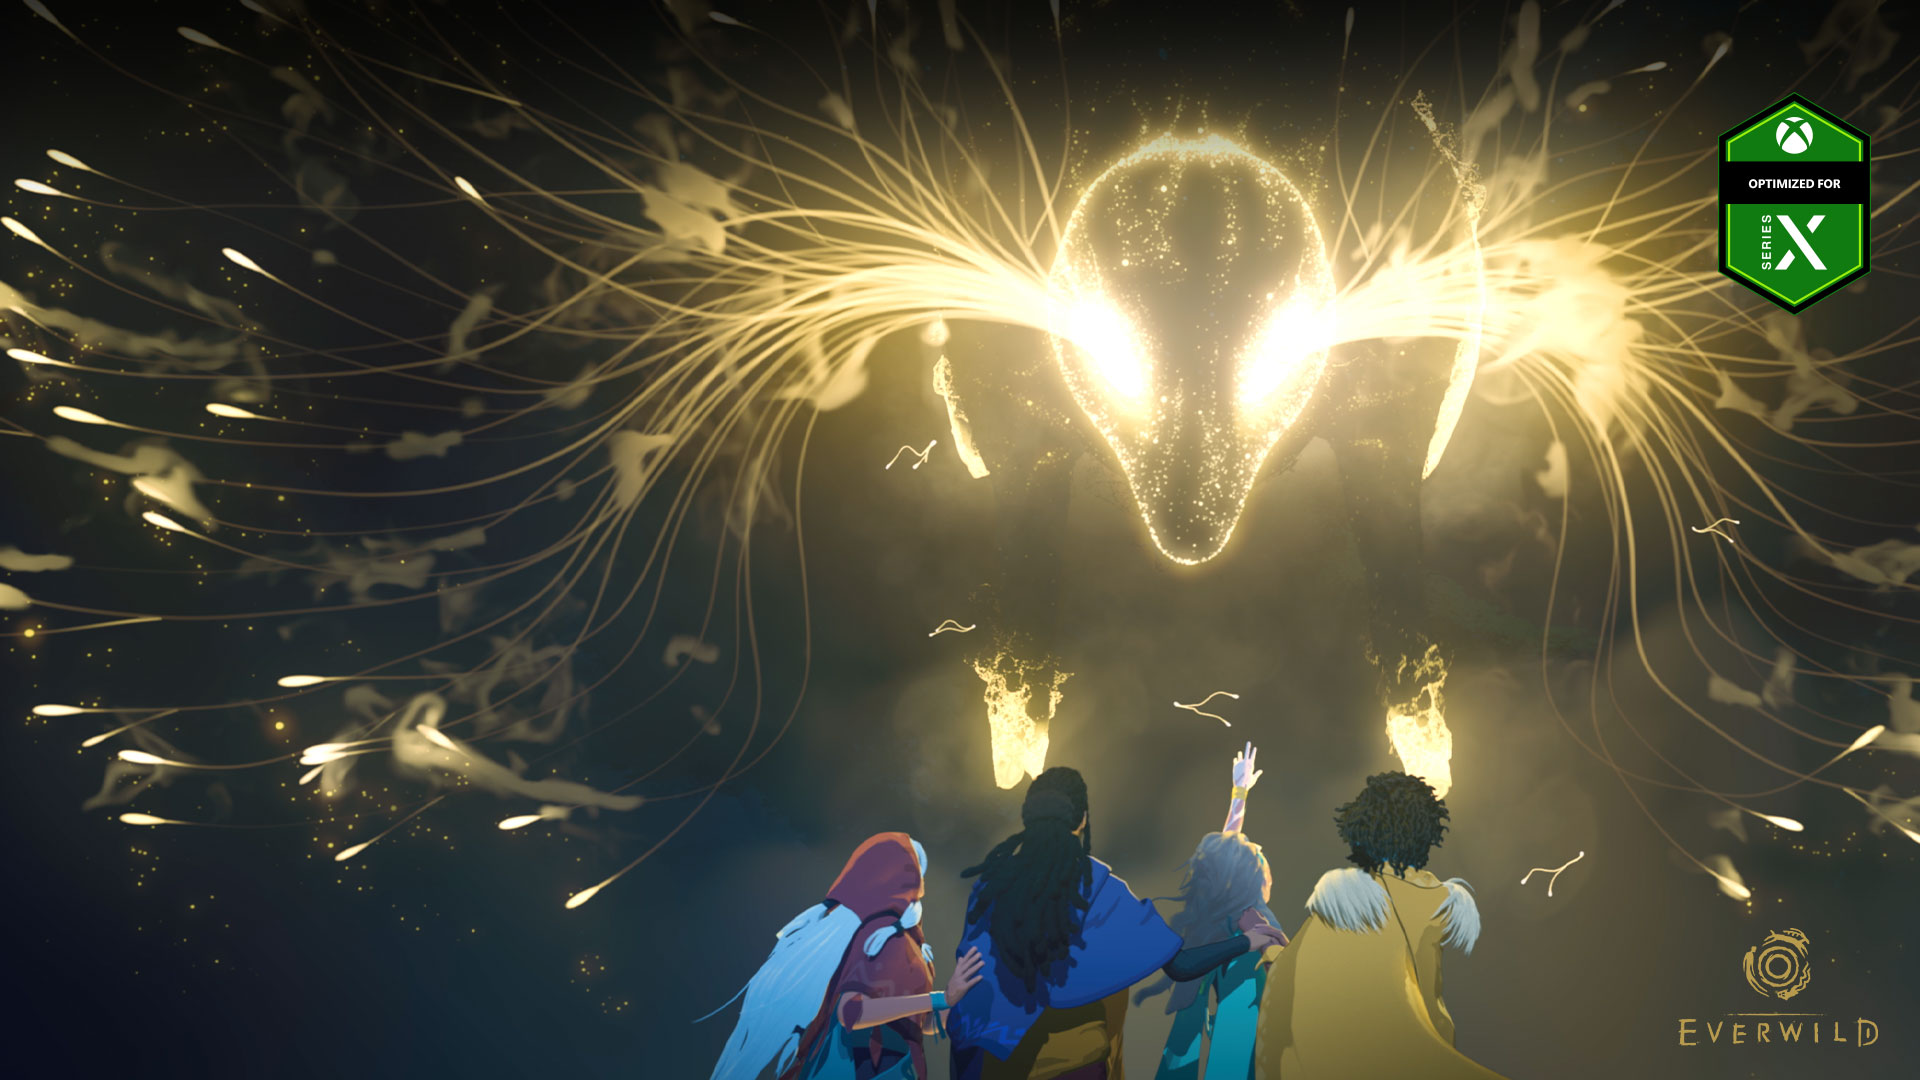 Optimized for Series X, Everwild, a group of characters stand under a deer head made of light.